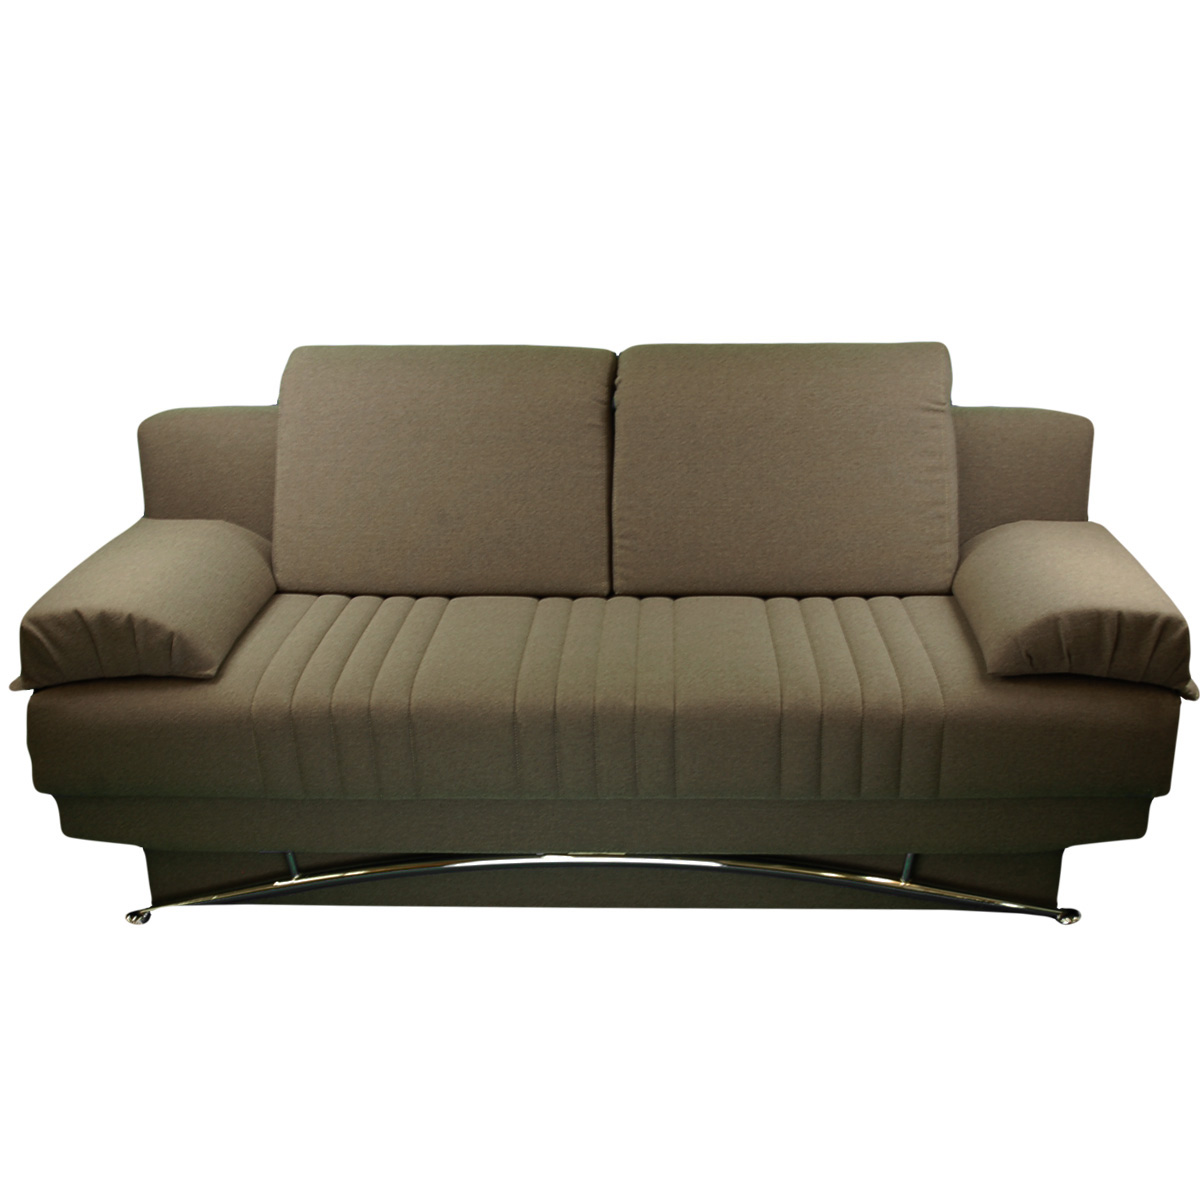 Fantasy Platin Light Brown Convertible Sofa Bed by Sunset